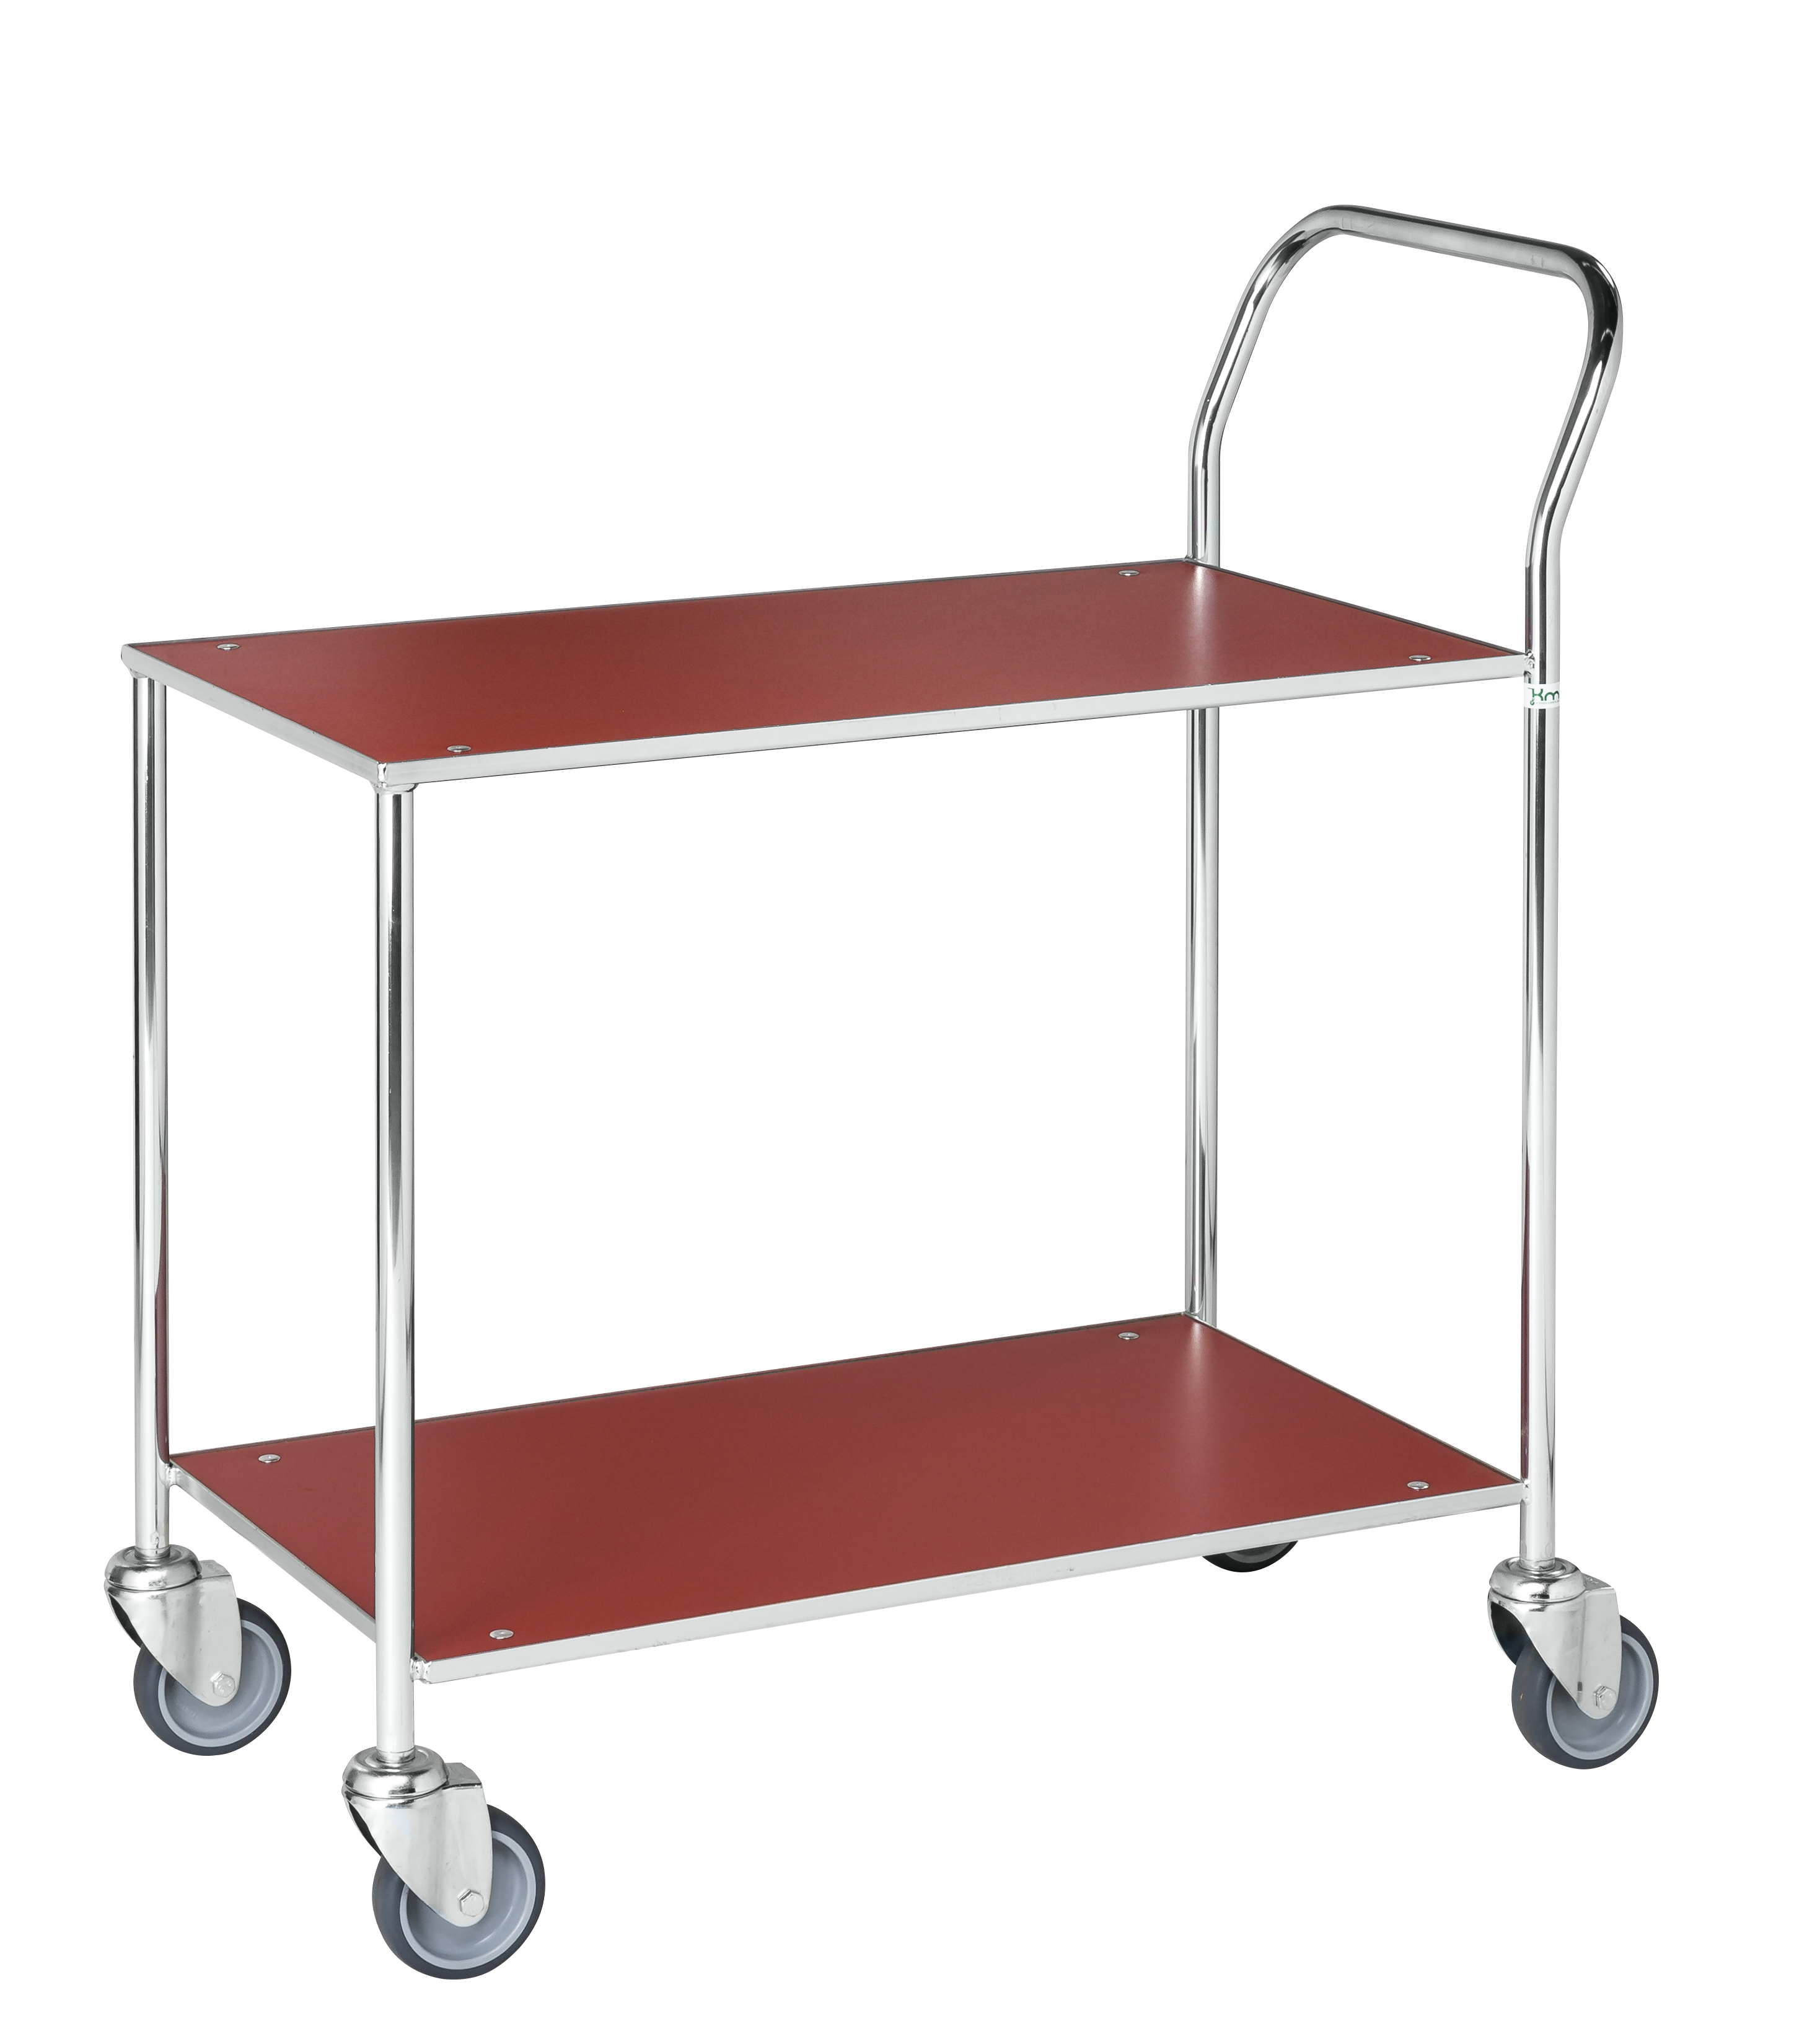 Small table trolley, fully welded KM172-1B